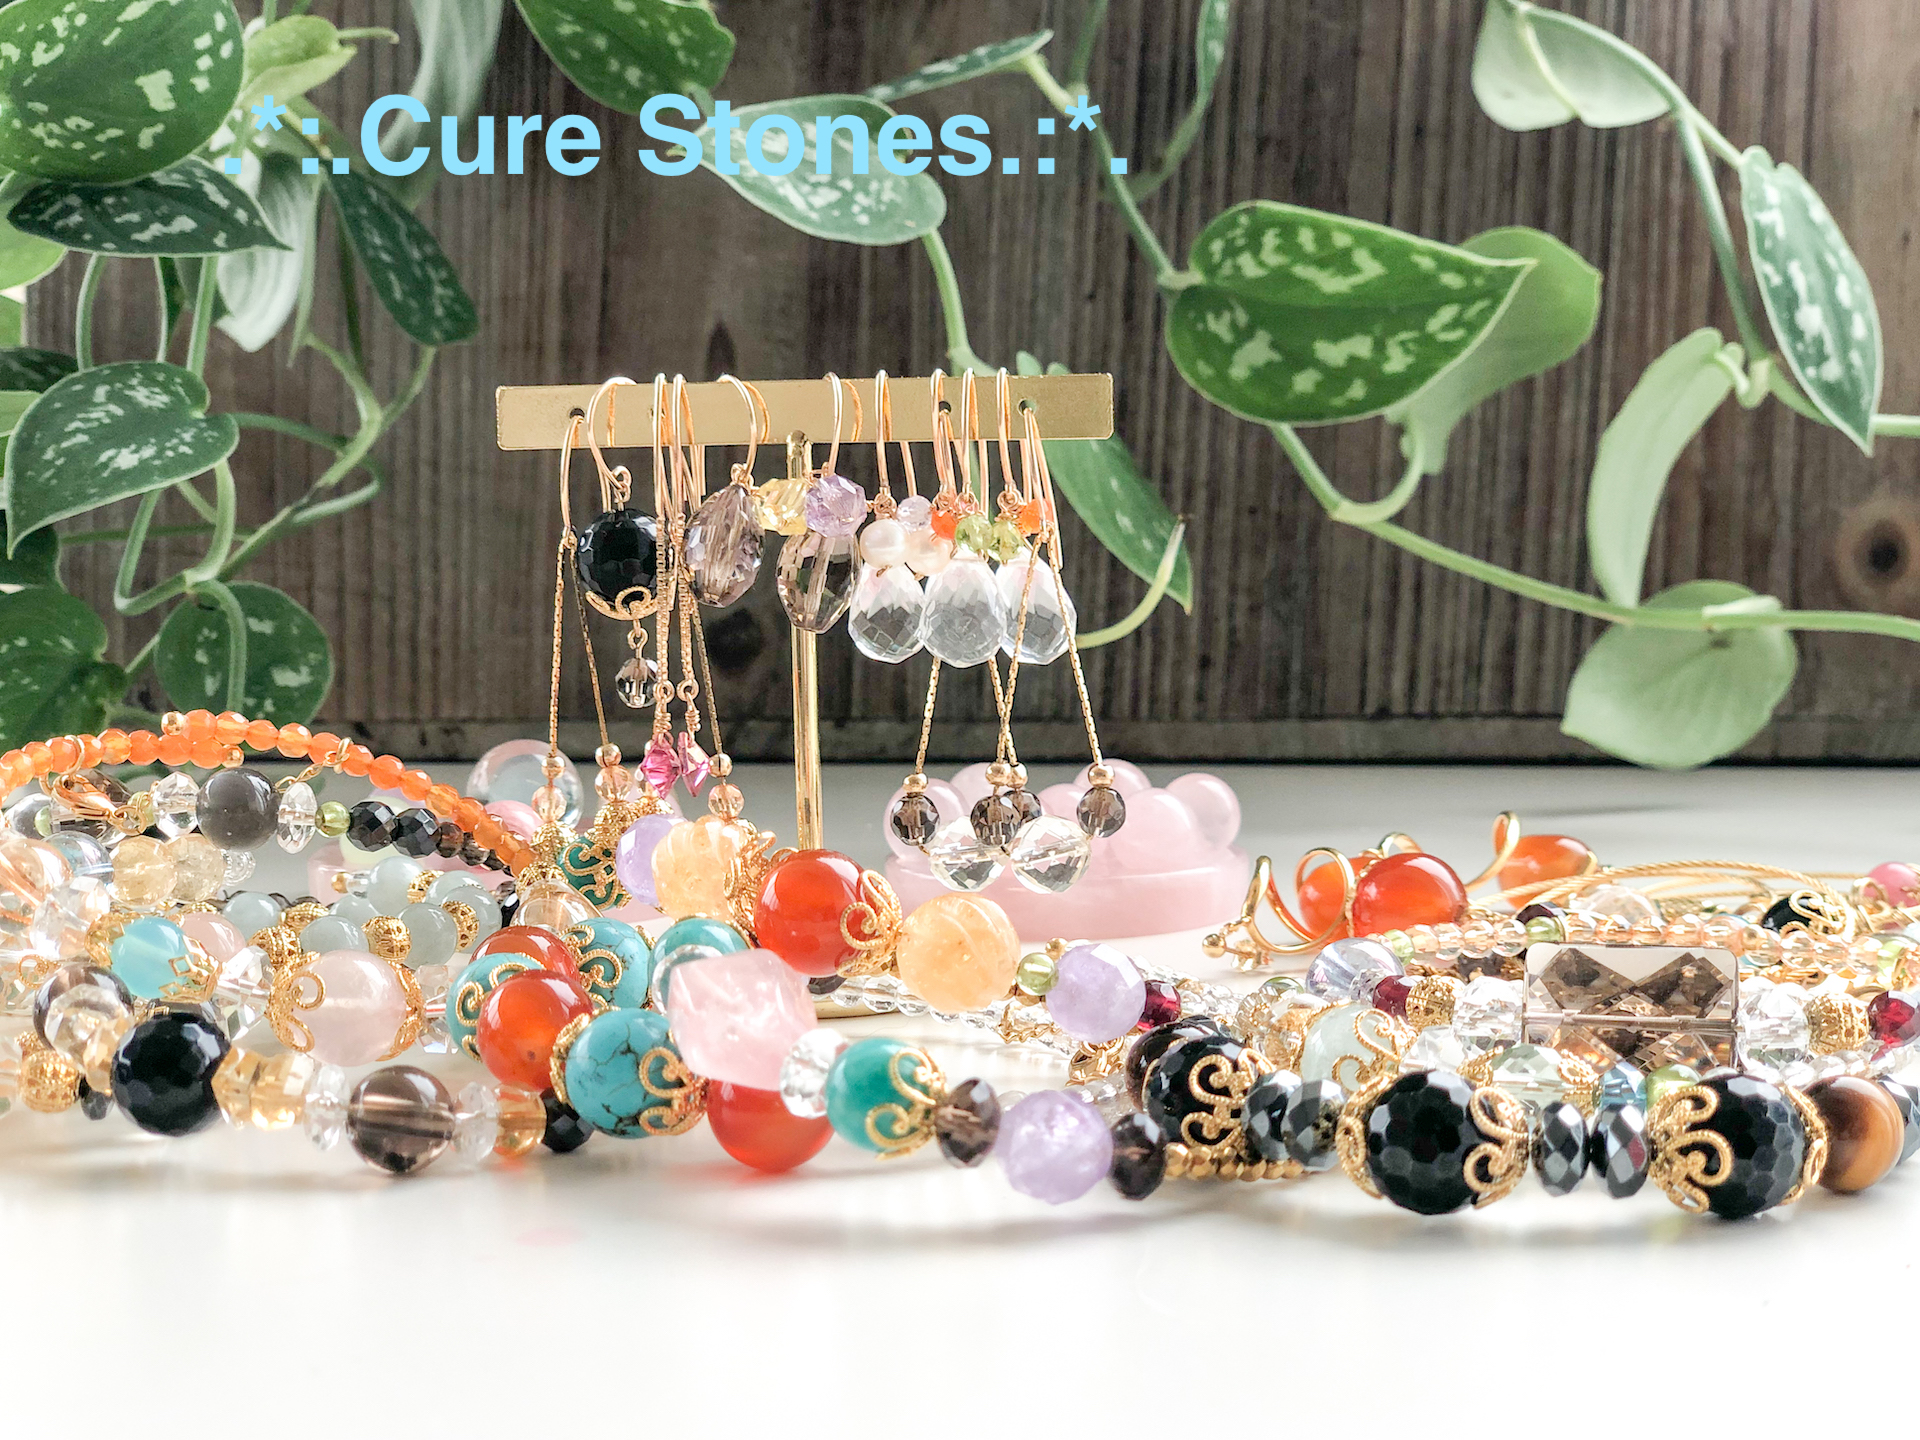 .*:.Cure Stones.:*.